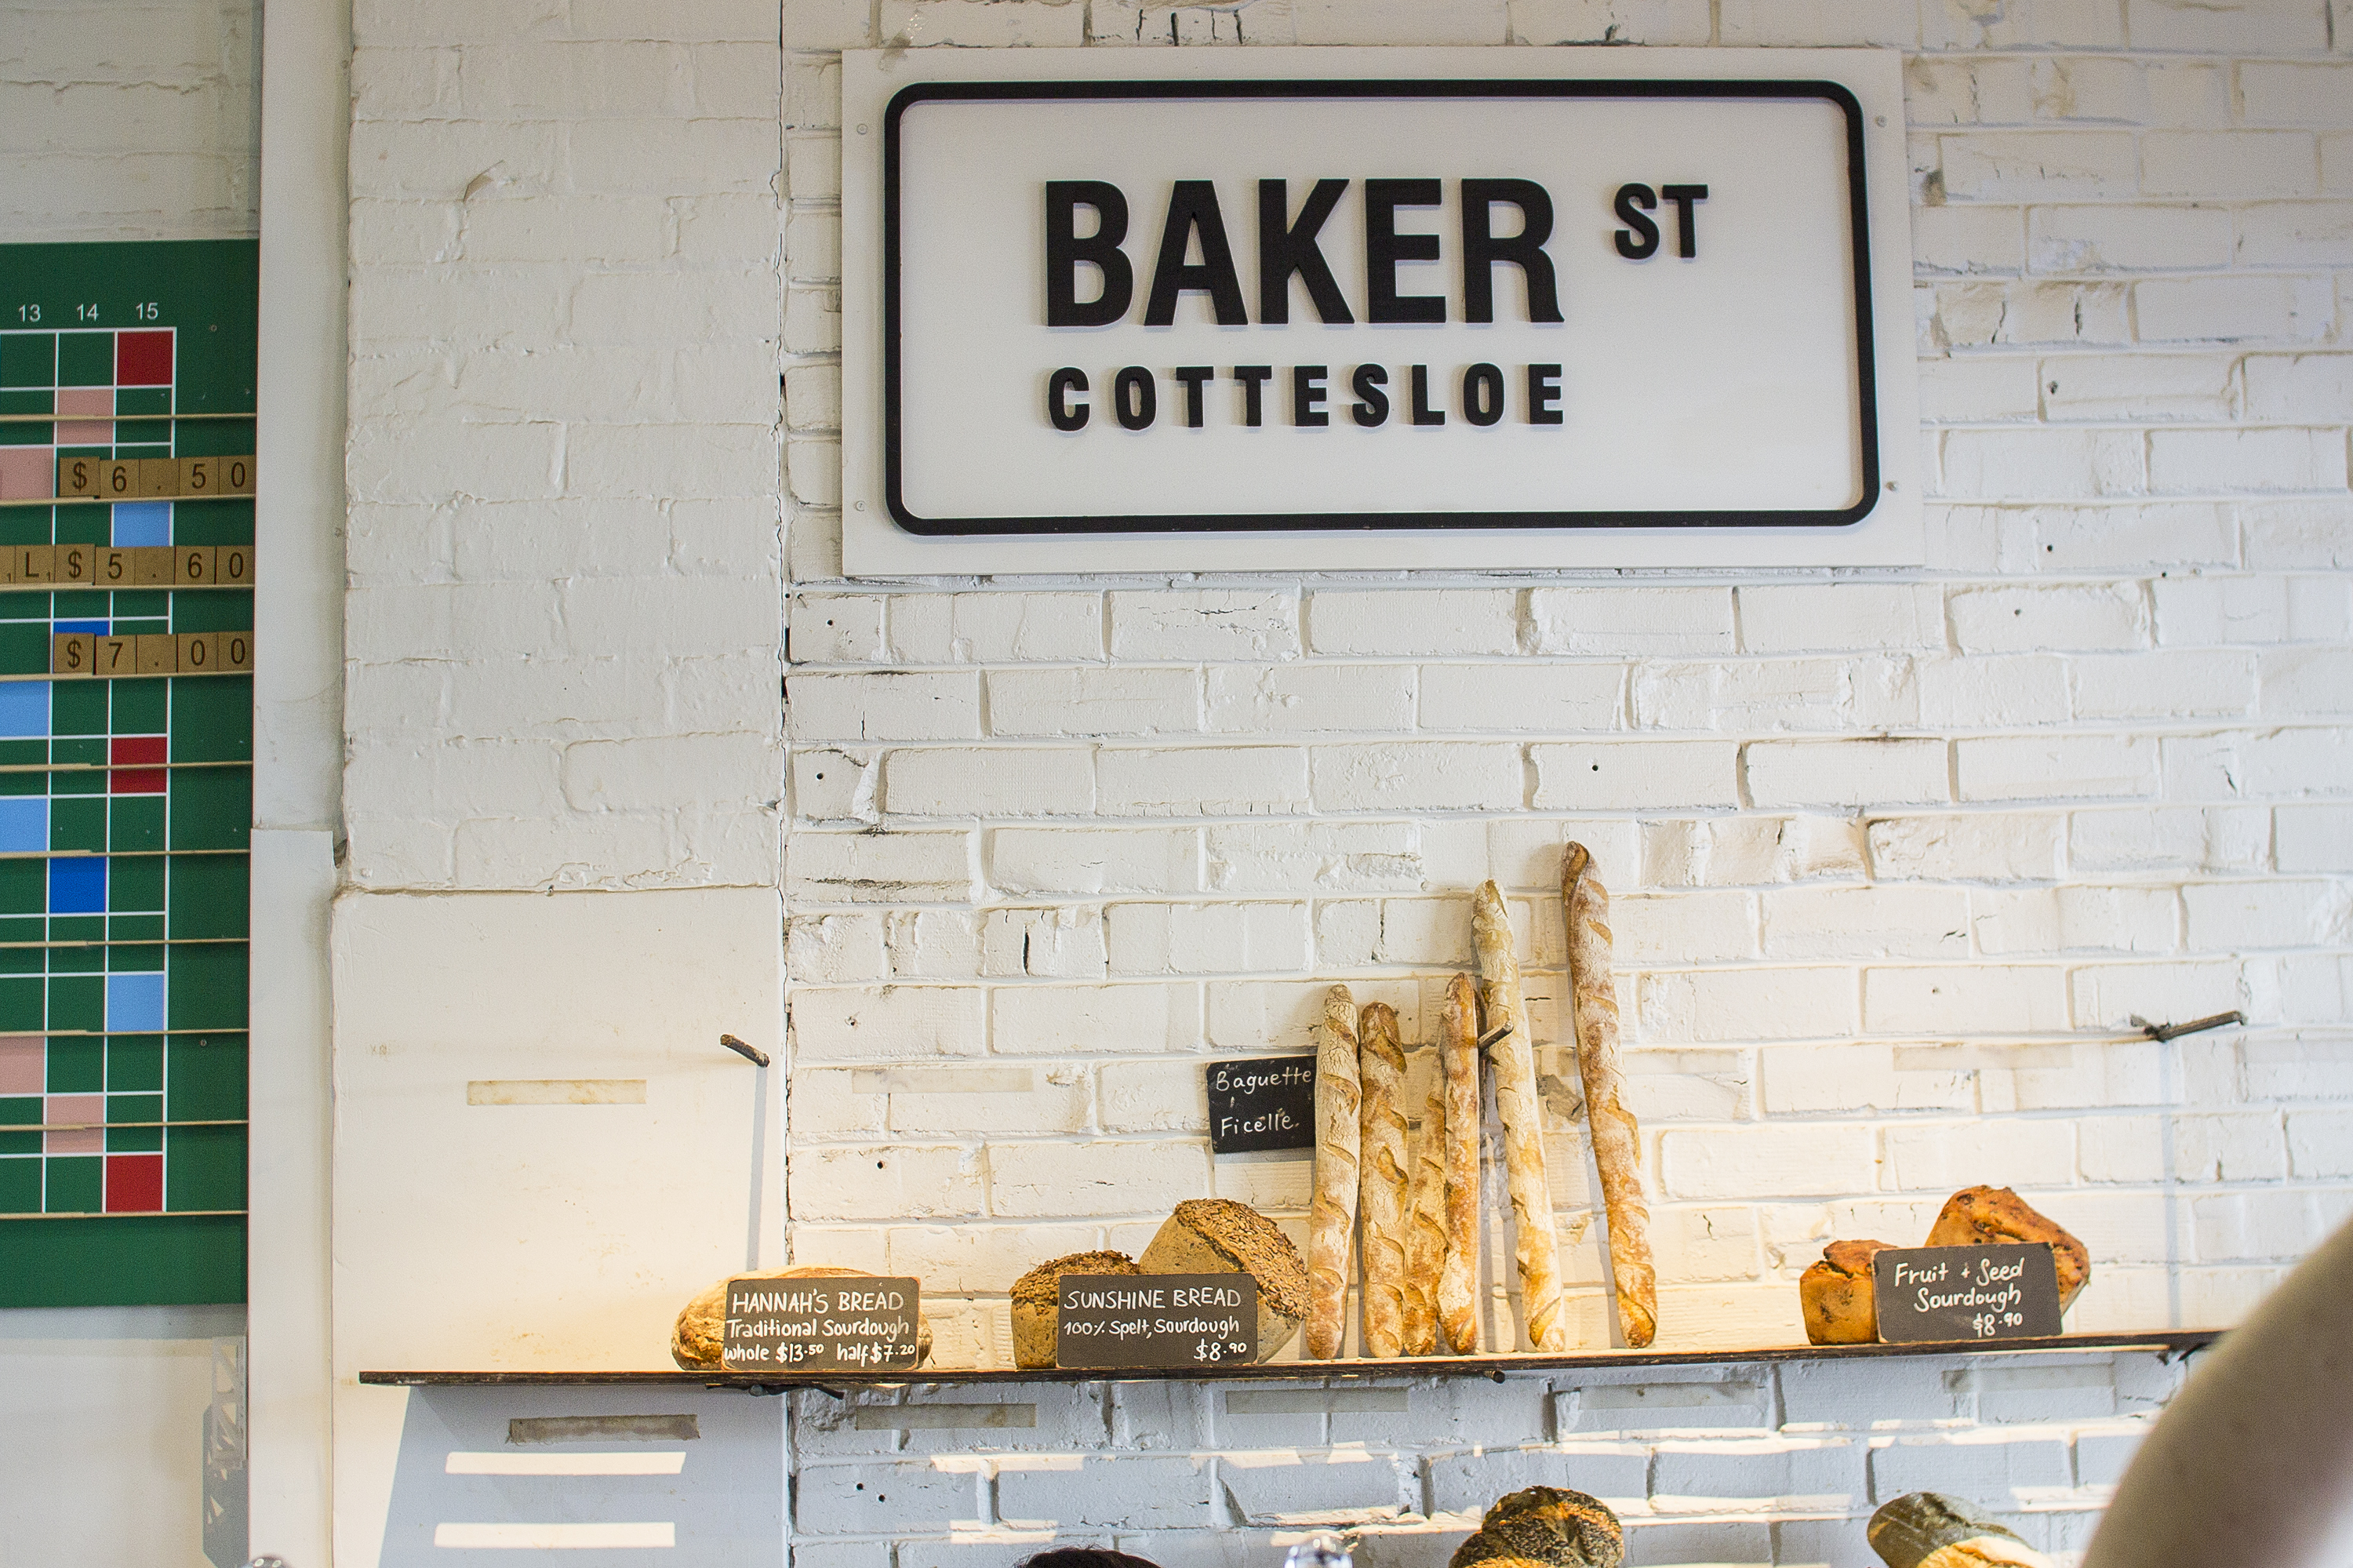 Getting baked at Baker St | Queen of Bad Timing